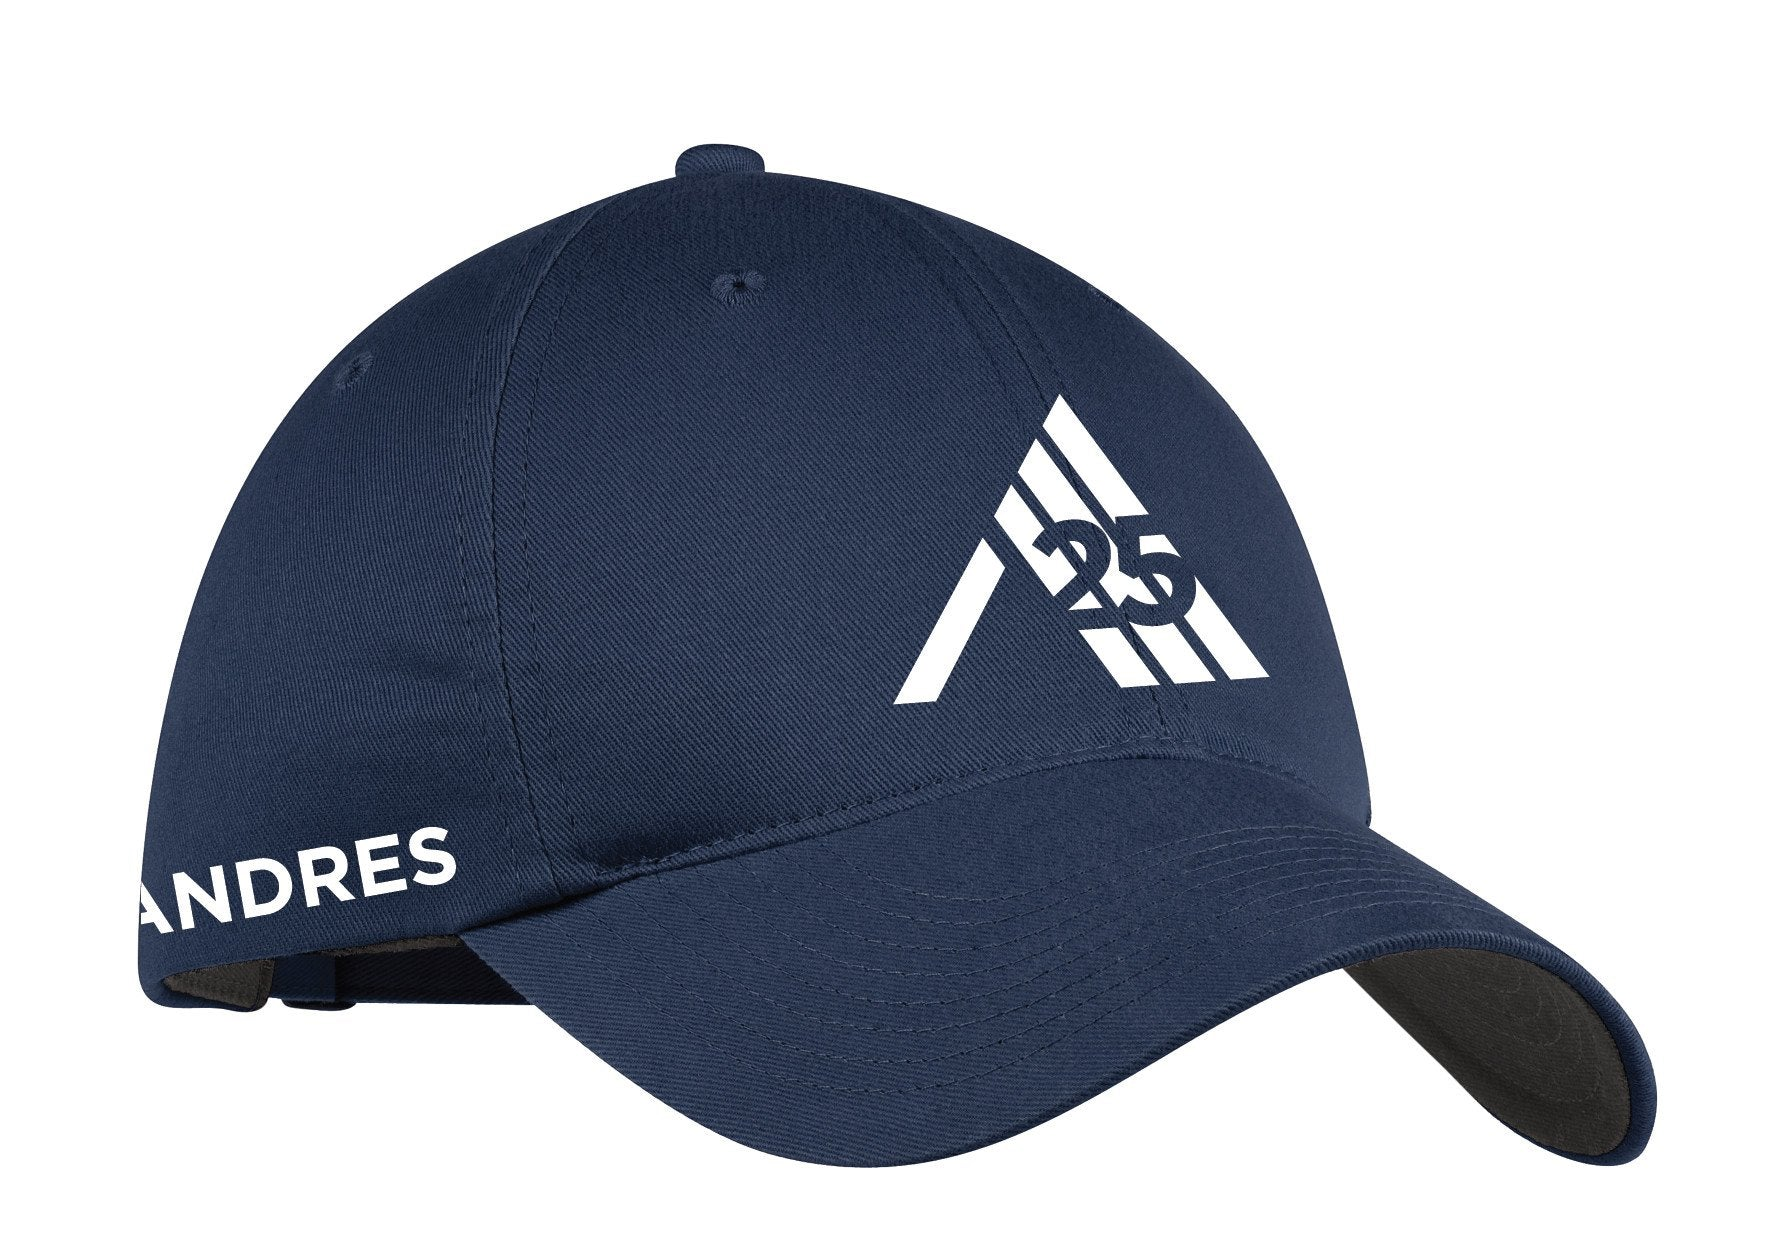 Nike Hat - Navy - Catalyst Agency Gear Store 84182857f22